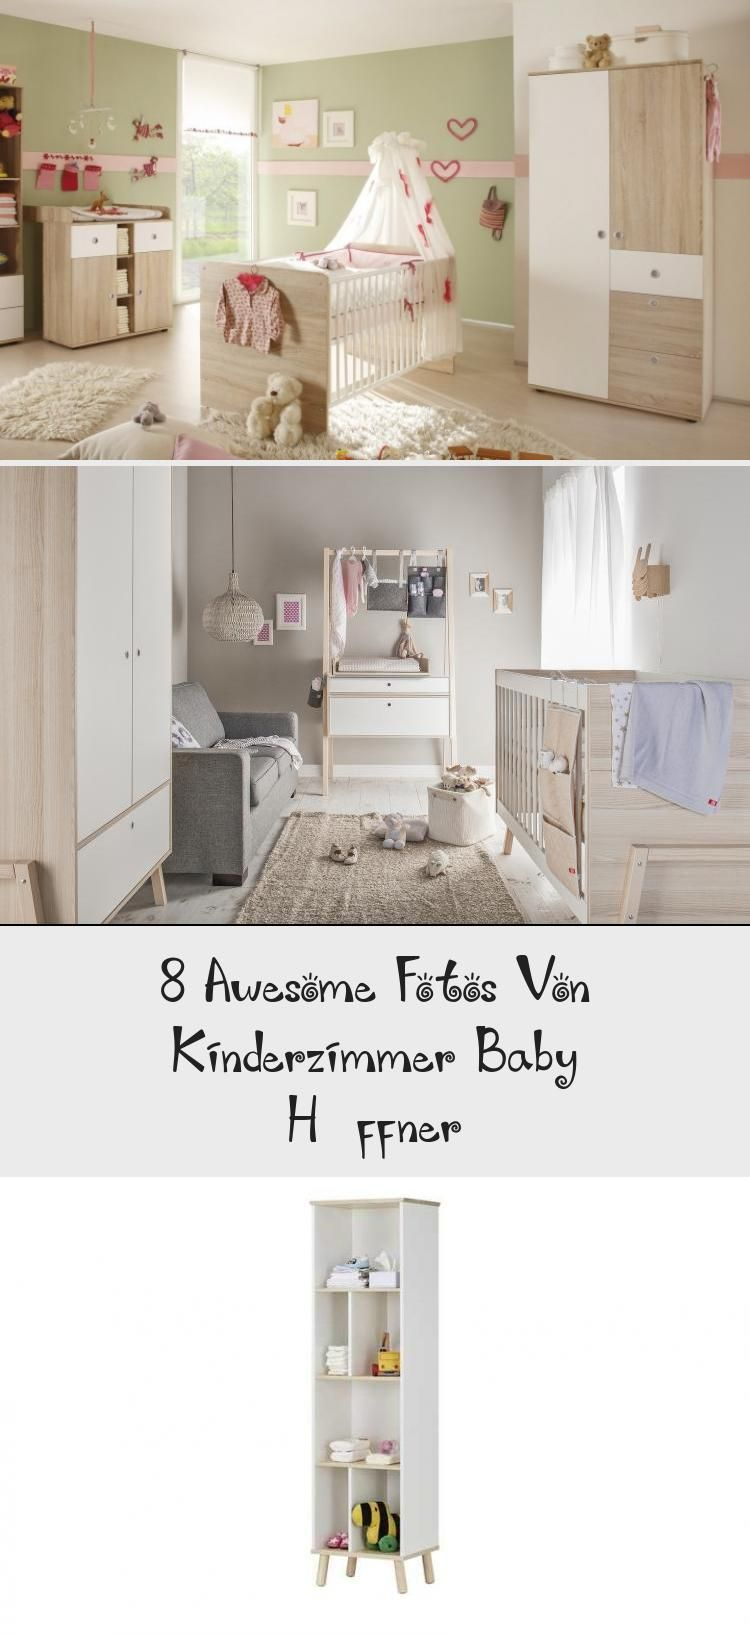 8 Awesome Fotos Von Kinderzimmer Baby Höffner Kinder